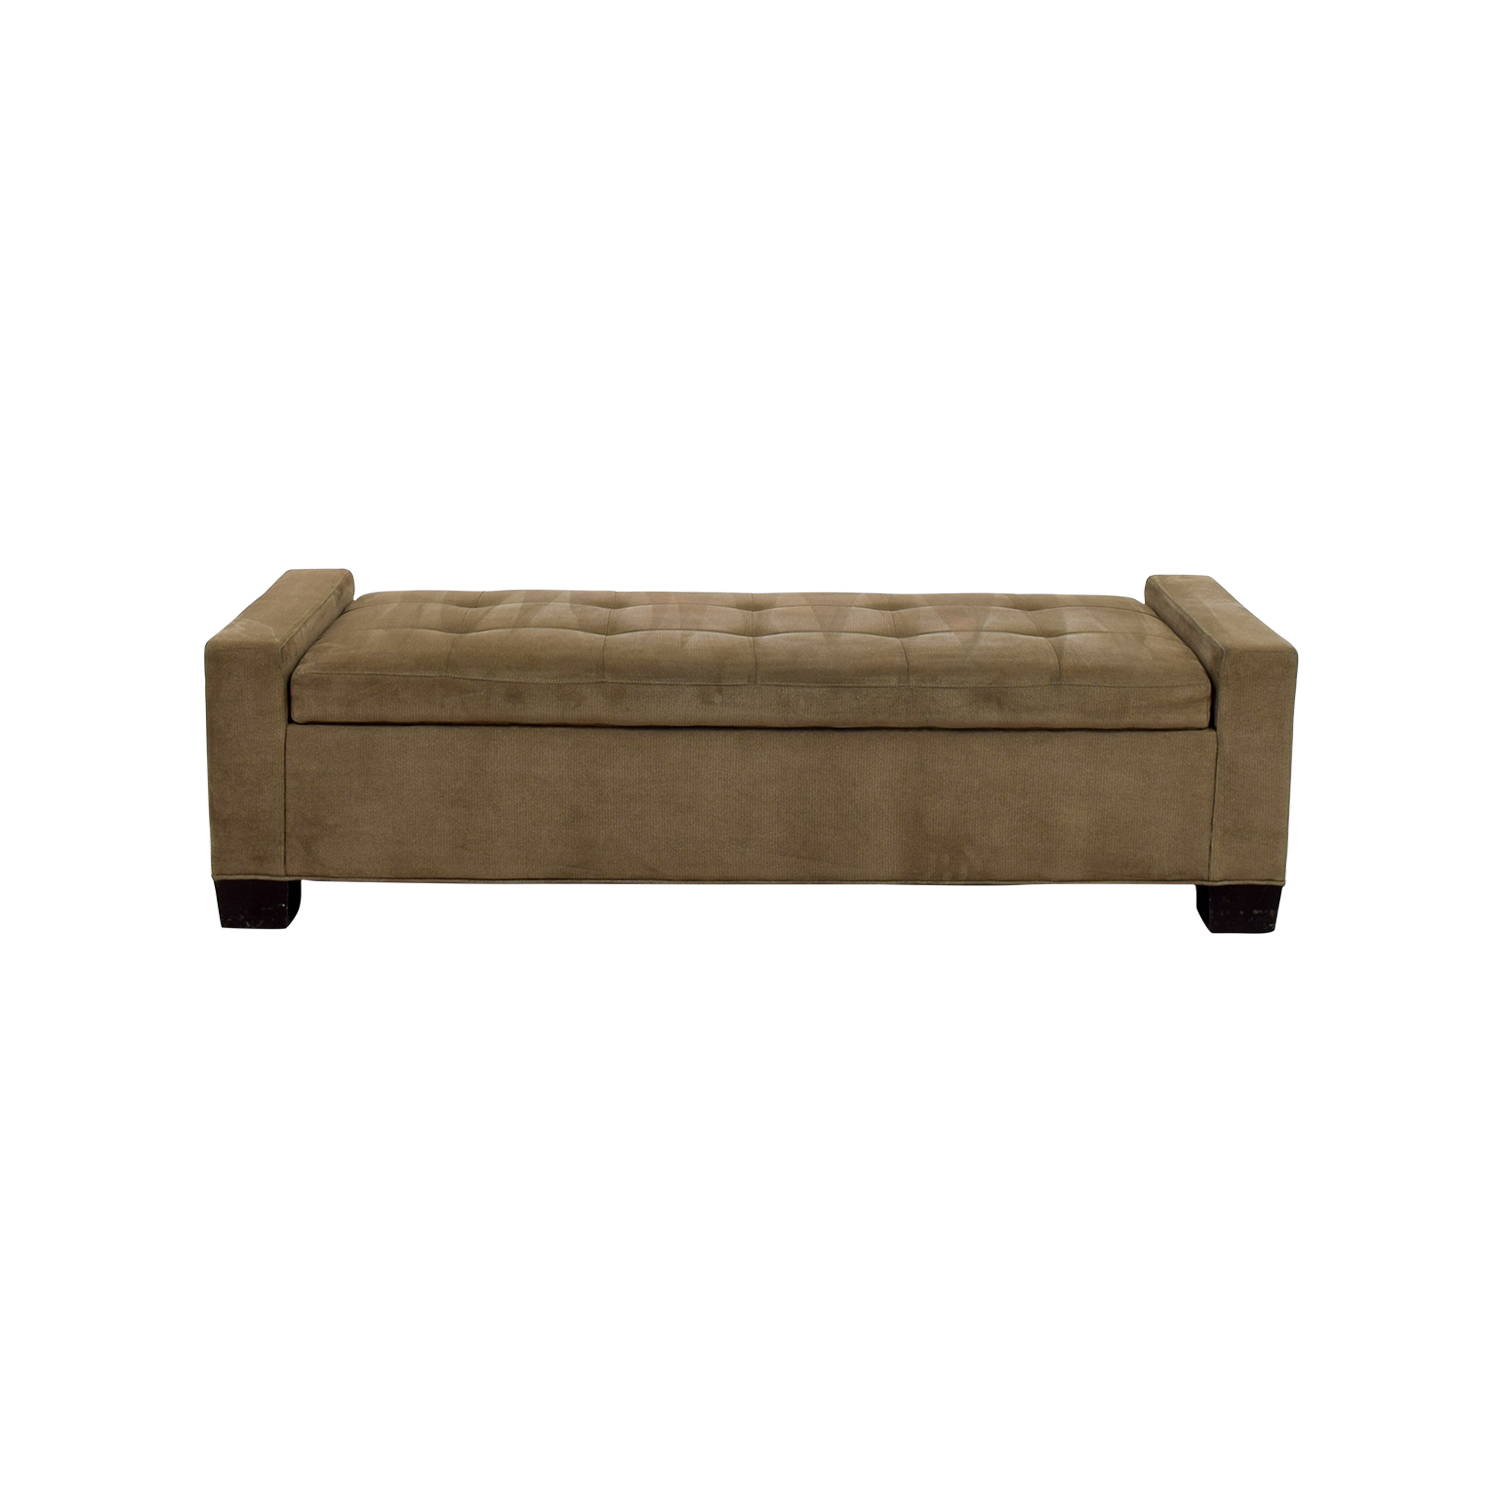 shop Crate & Barrel Brown Tufted Daybed or Storage Bench Crate & Barrel Benches